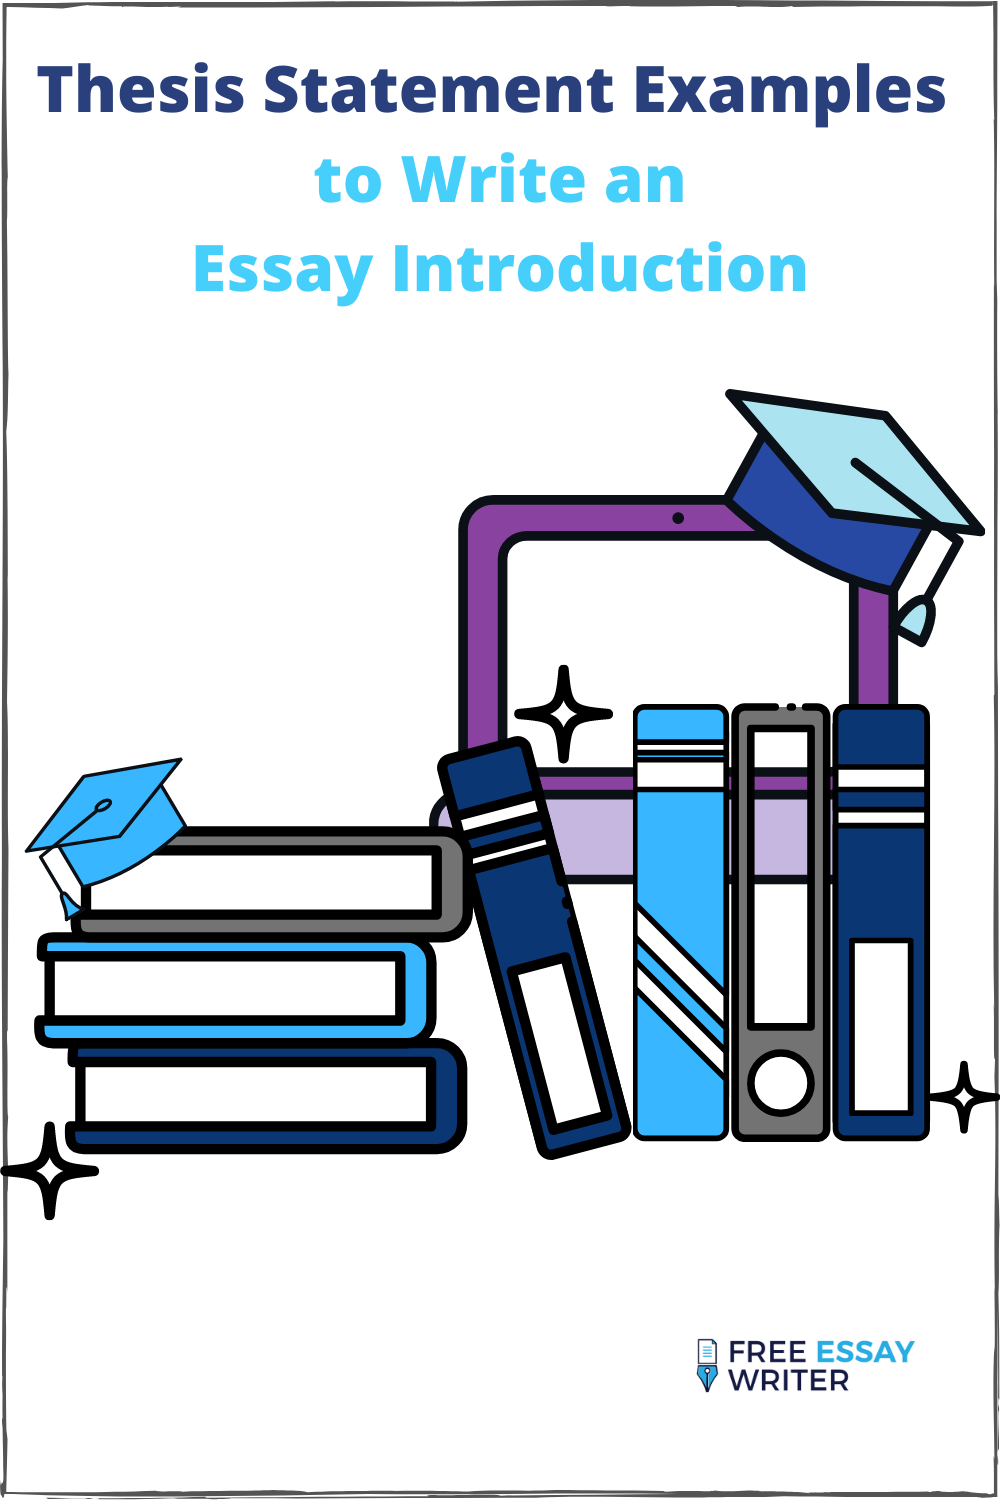 Thesis-Statement-Examples-to-Write-an-Essay-Introduction.png